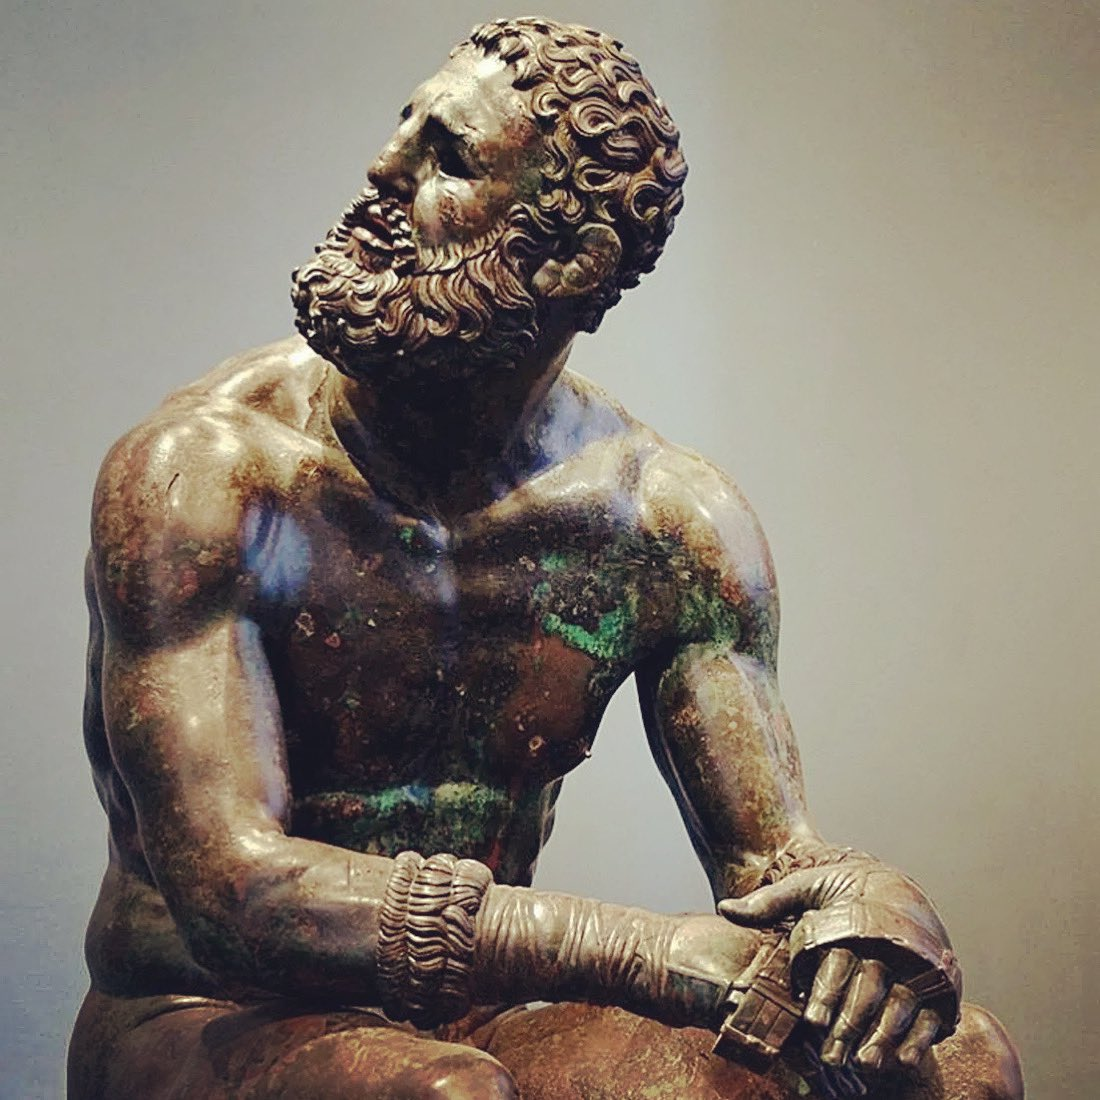 """""""Boxer at Rest"""" is one of the finest art pieces to have survived from the Hellenistic Period. This bronze sculpture was made between 330 B.C.- 50 B.C. and brilliantly adds some unusual realism to an otherwise heavily stylized art. #art #arthistory #boxer"""